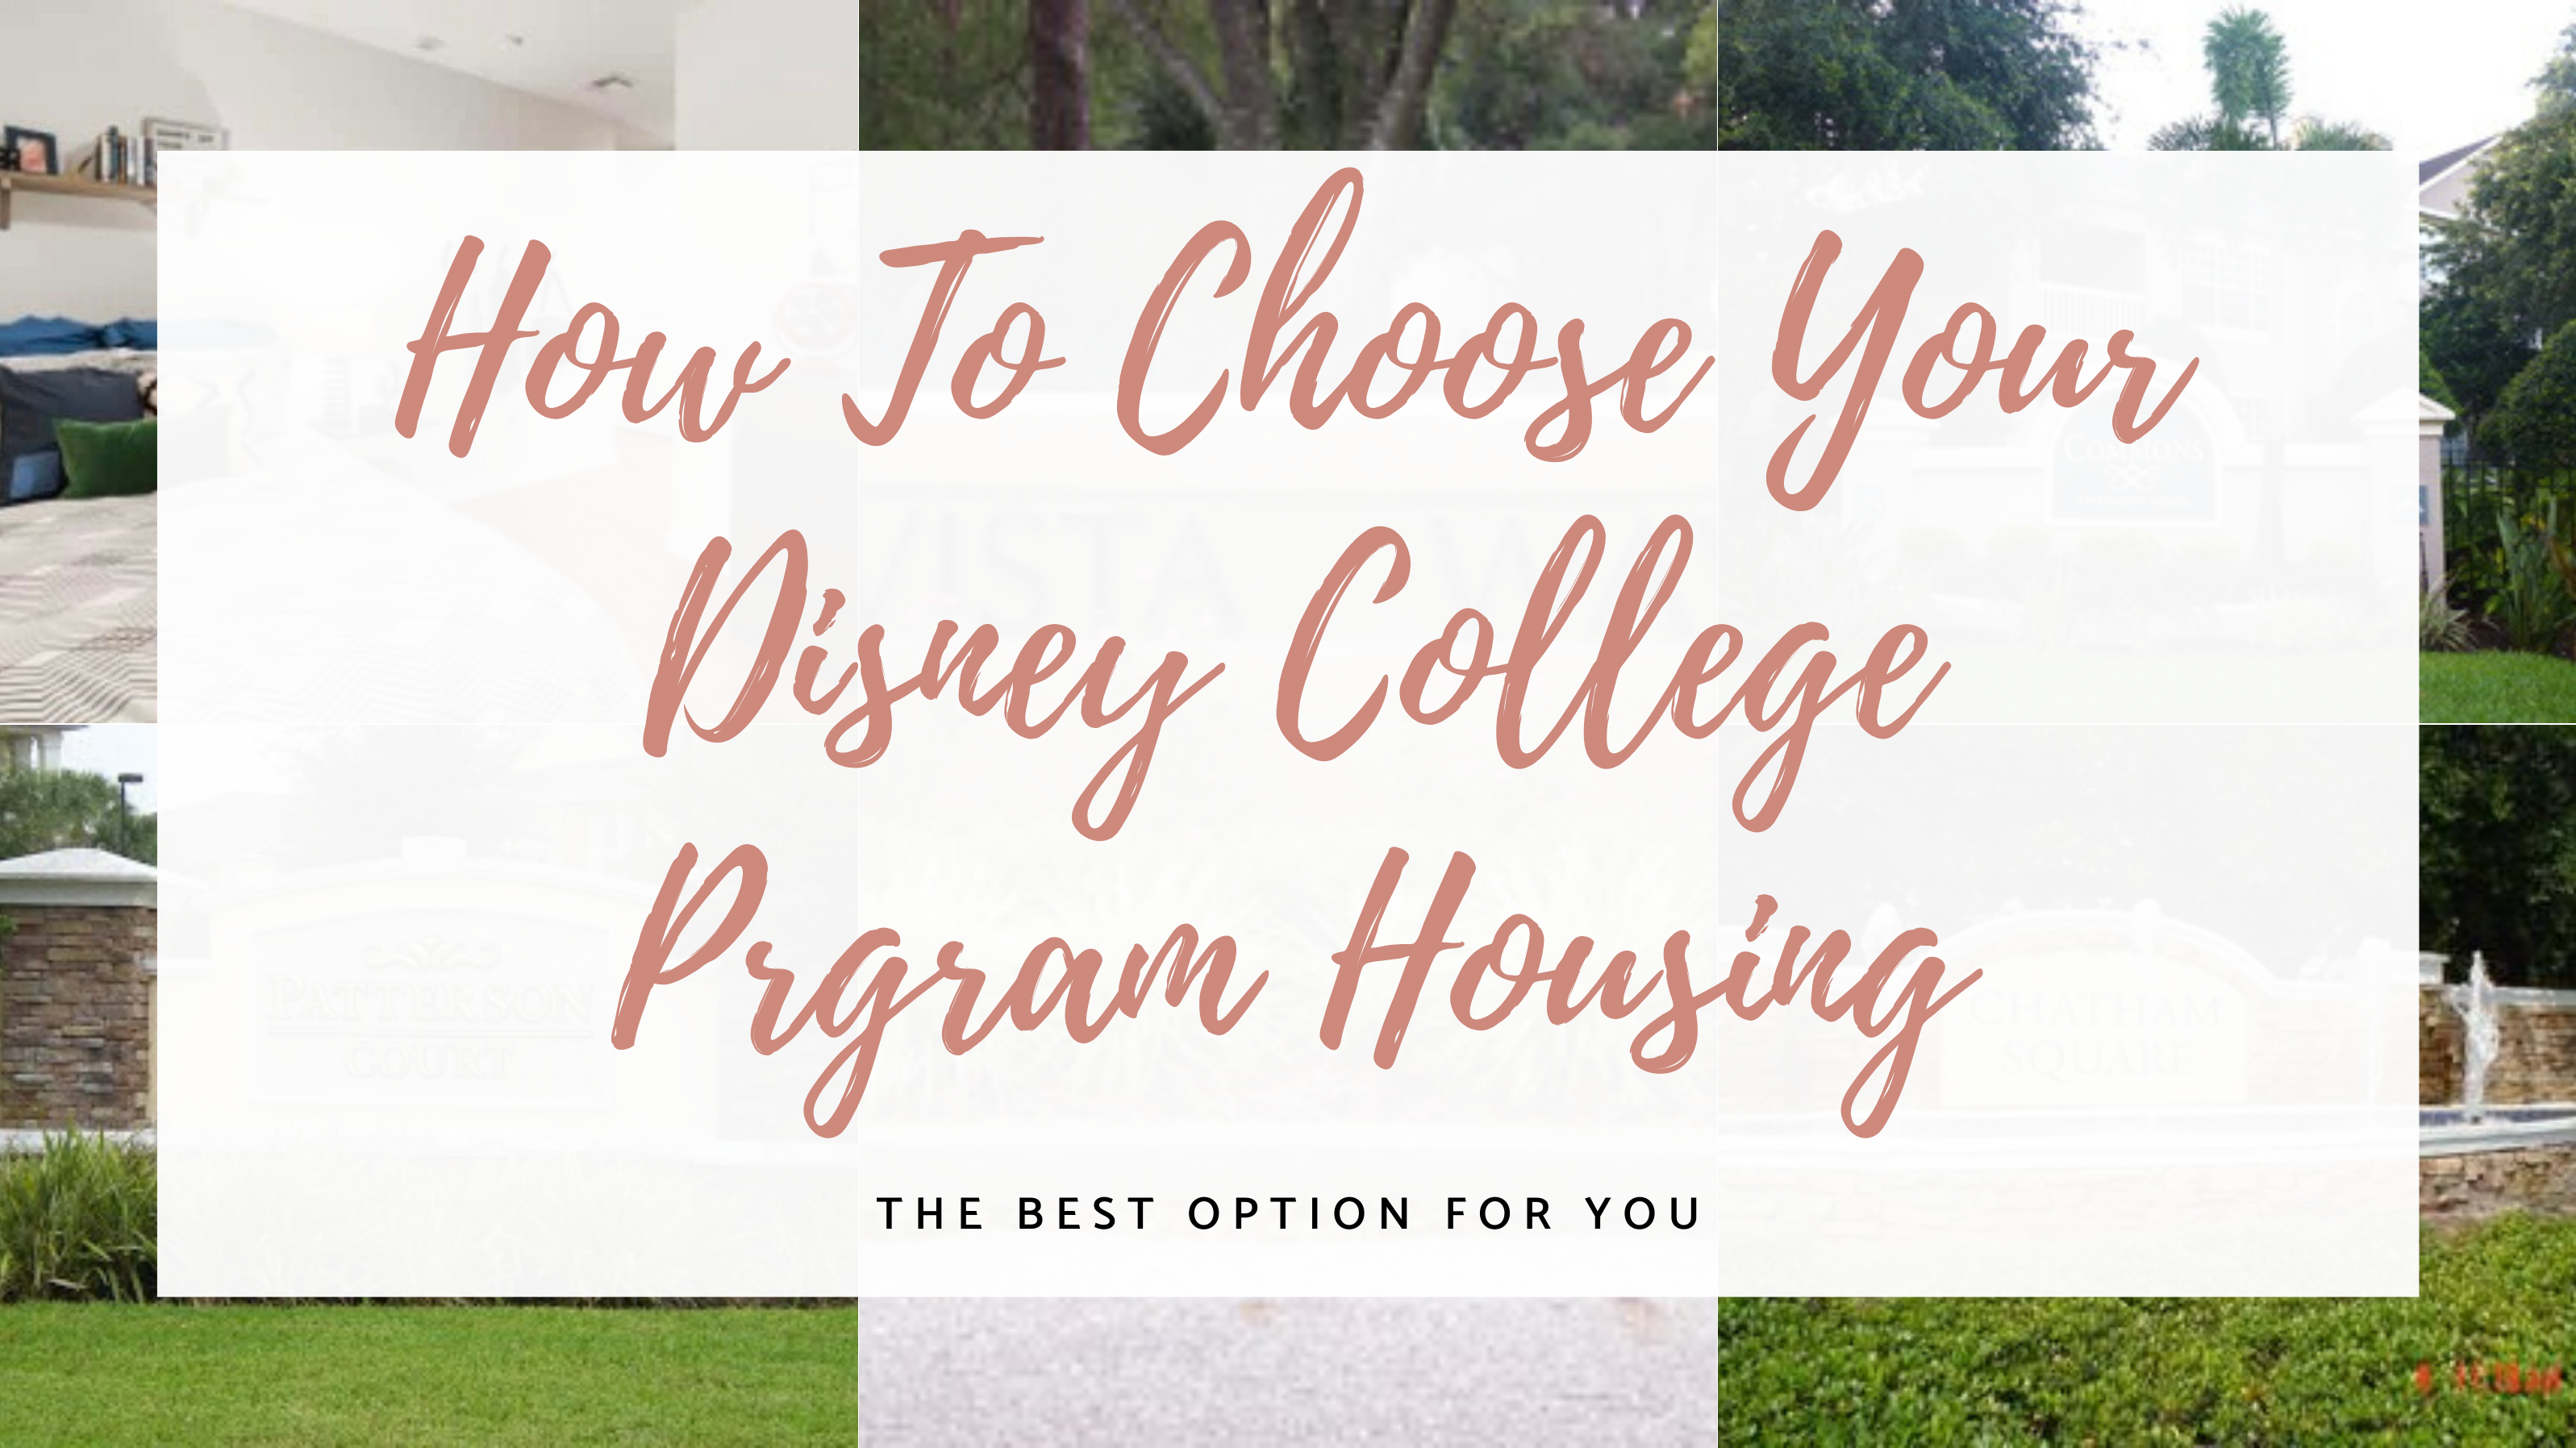 Disney college program housing